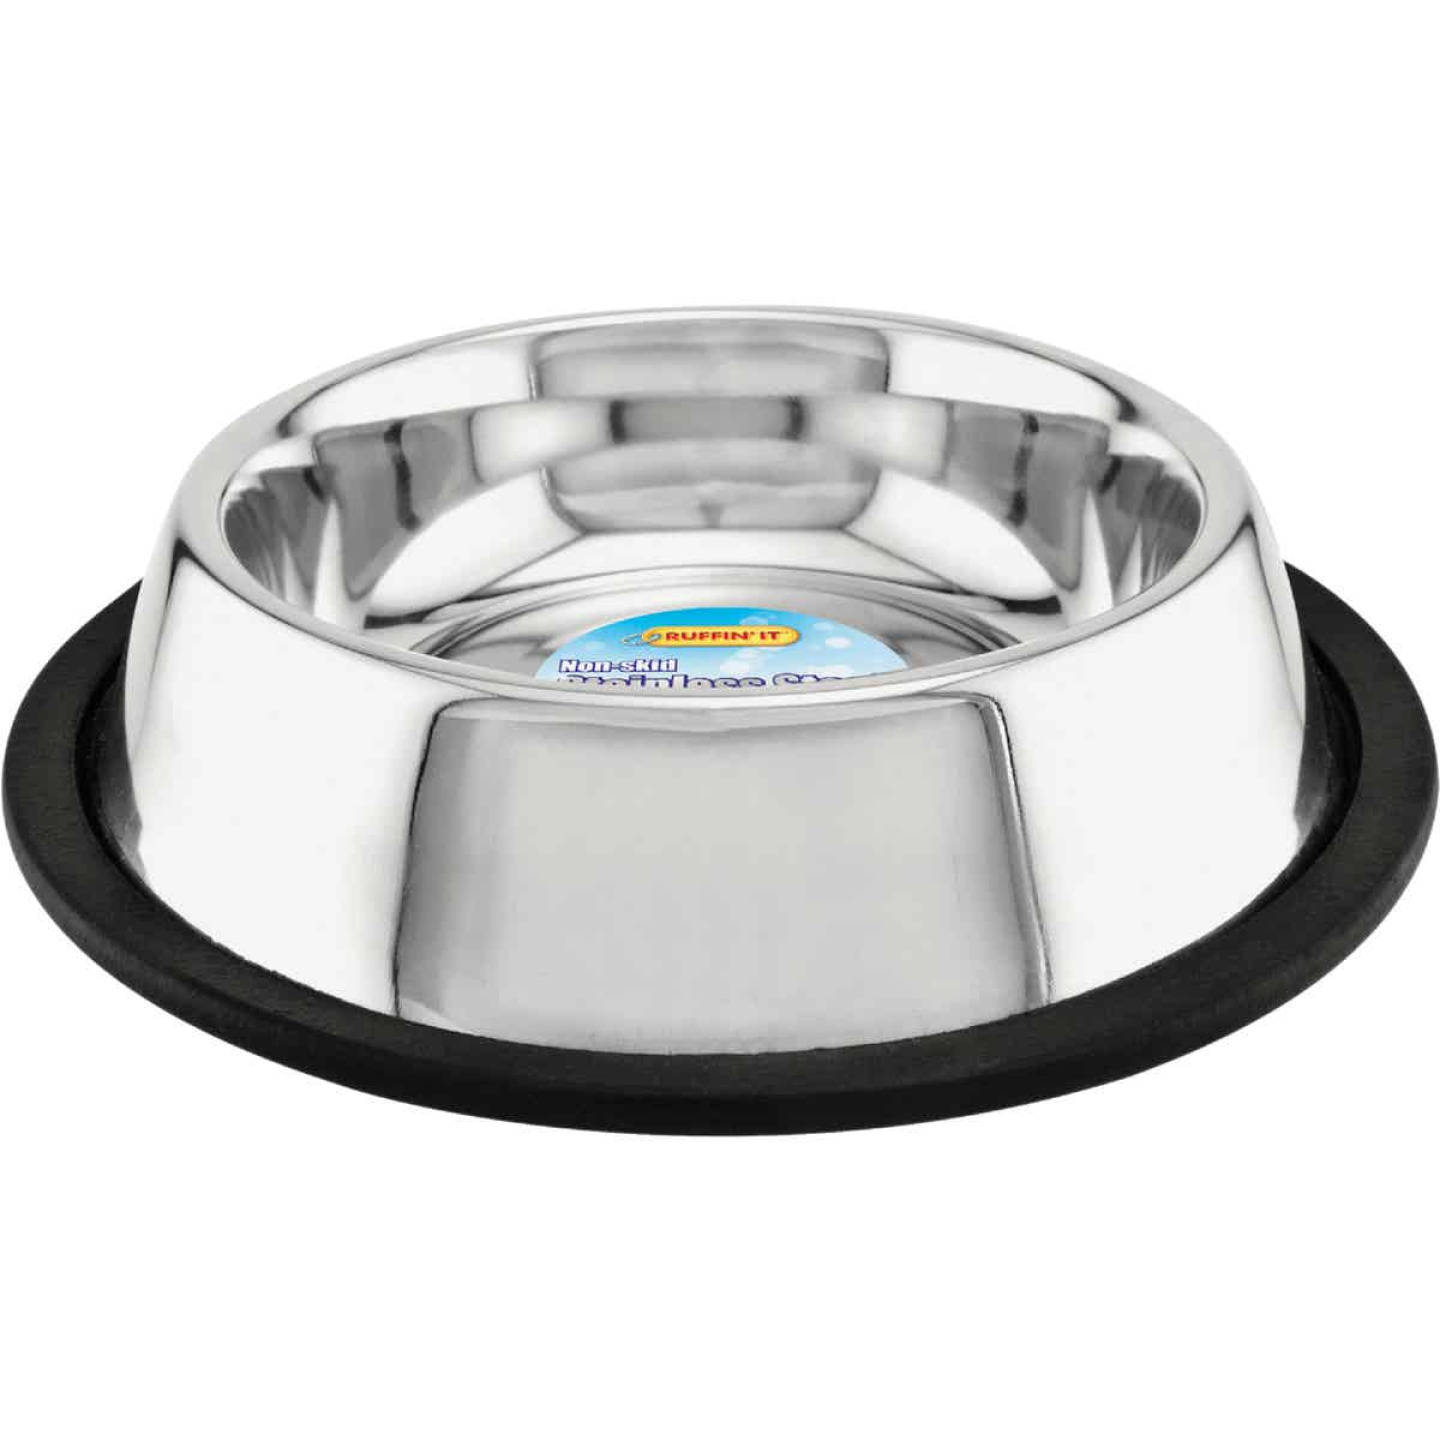 Westminster Pet Ruffin' it Stainless Steel Round 16 Oz. Non-Skid Pet Food Bowl Image 1